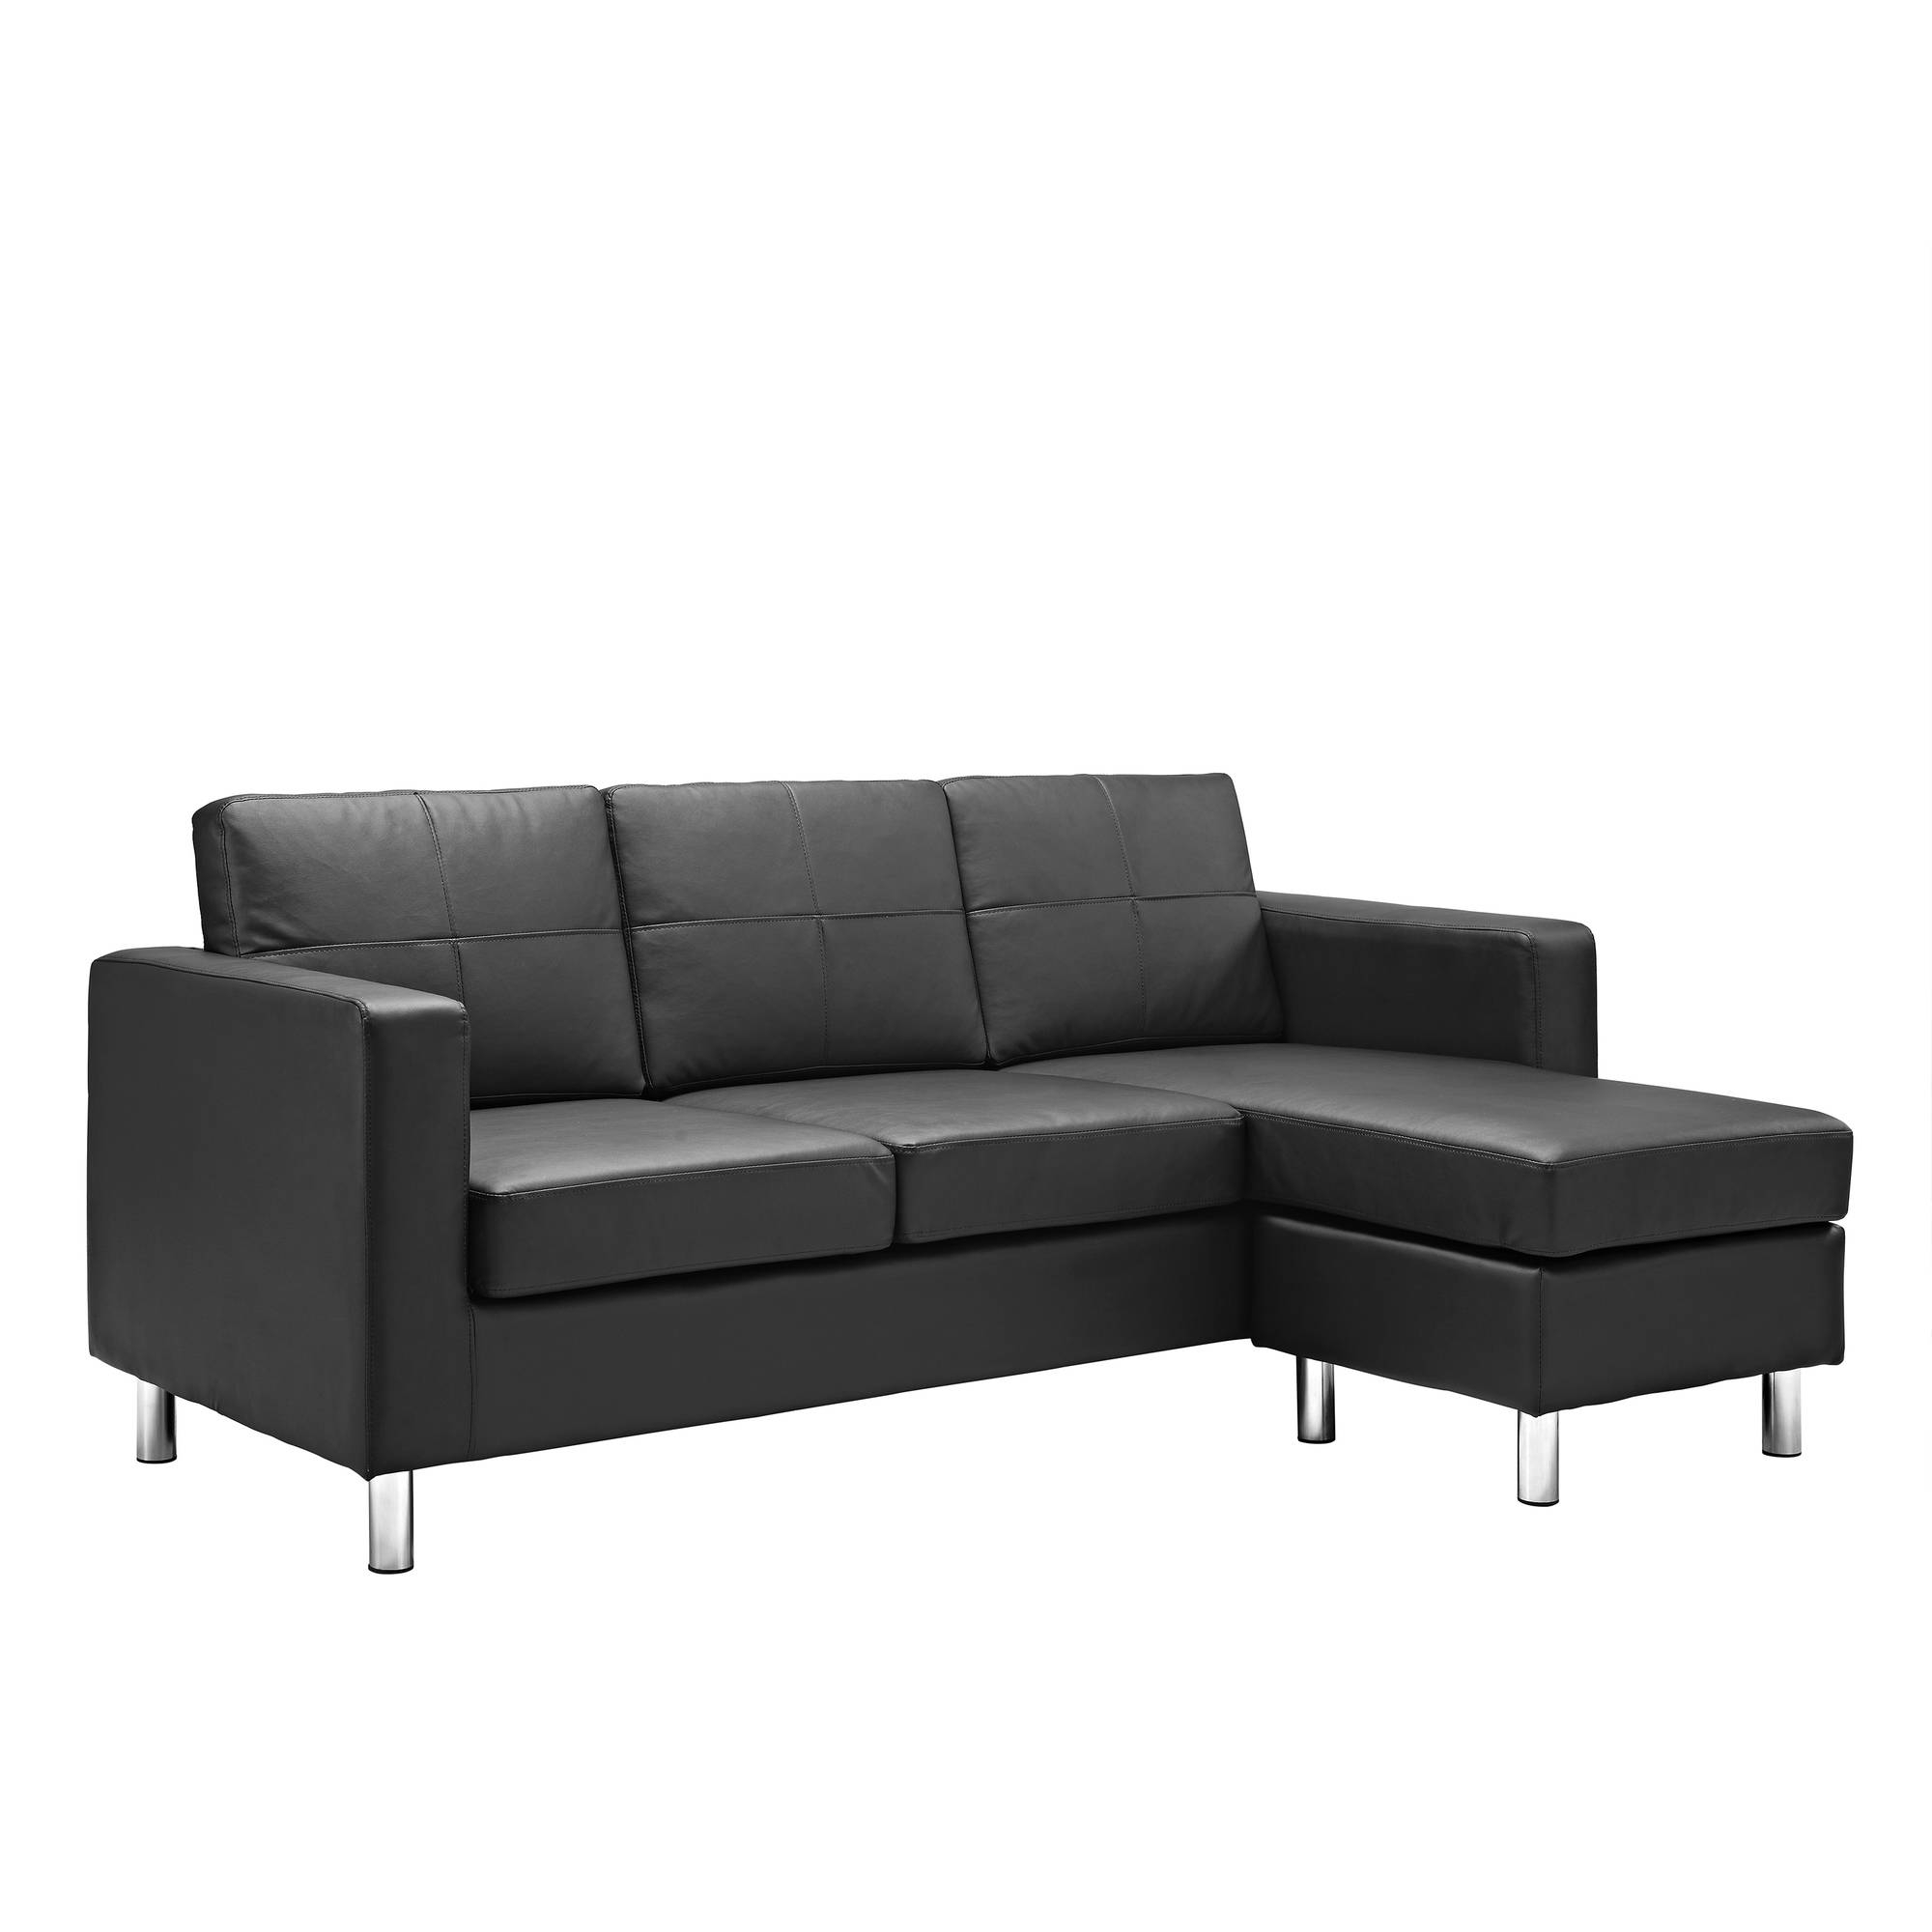 Wide Range Of Variety Of A Small Sectional Sofa – Pickndecor With Fashionable Sectional Sofas At Walmart (View 20 of 20)